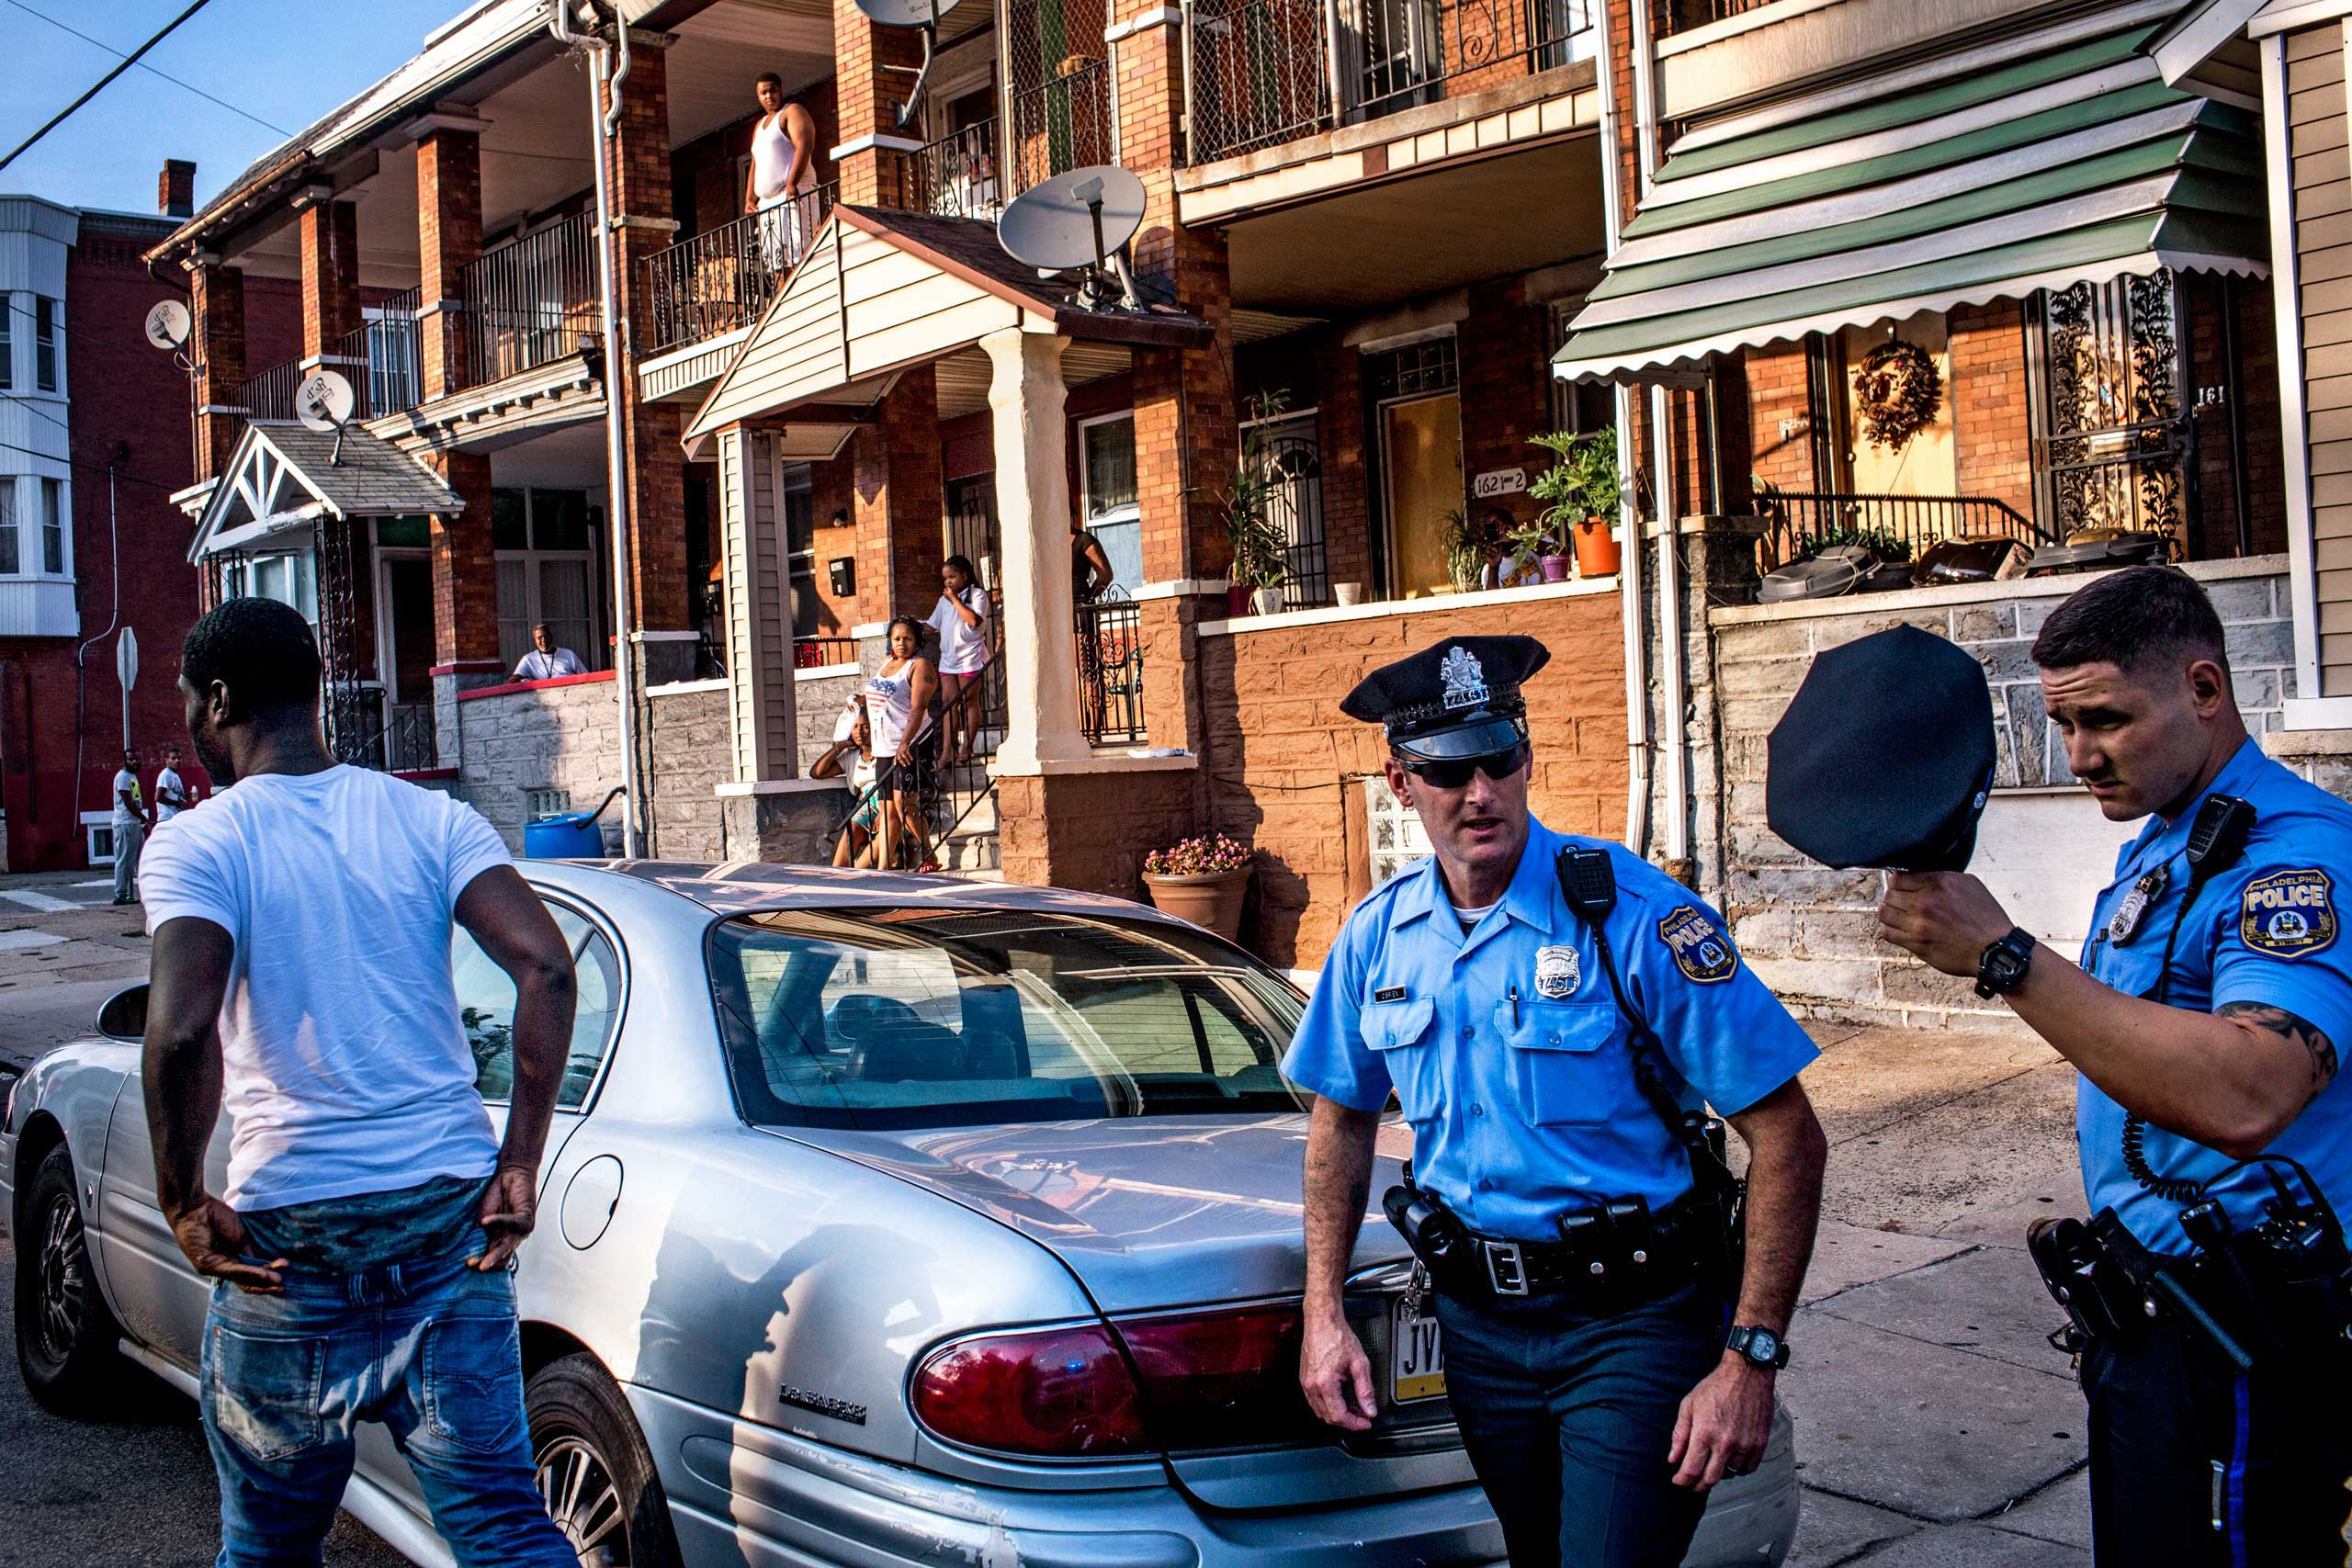 Officers Paul Watson, right, and his partner Officer Richard O'Brien make a traffic stop in Philadelphia, PA., as neighbors look on. After the police searched his car, the man was released. July 29, 2015.